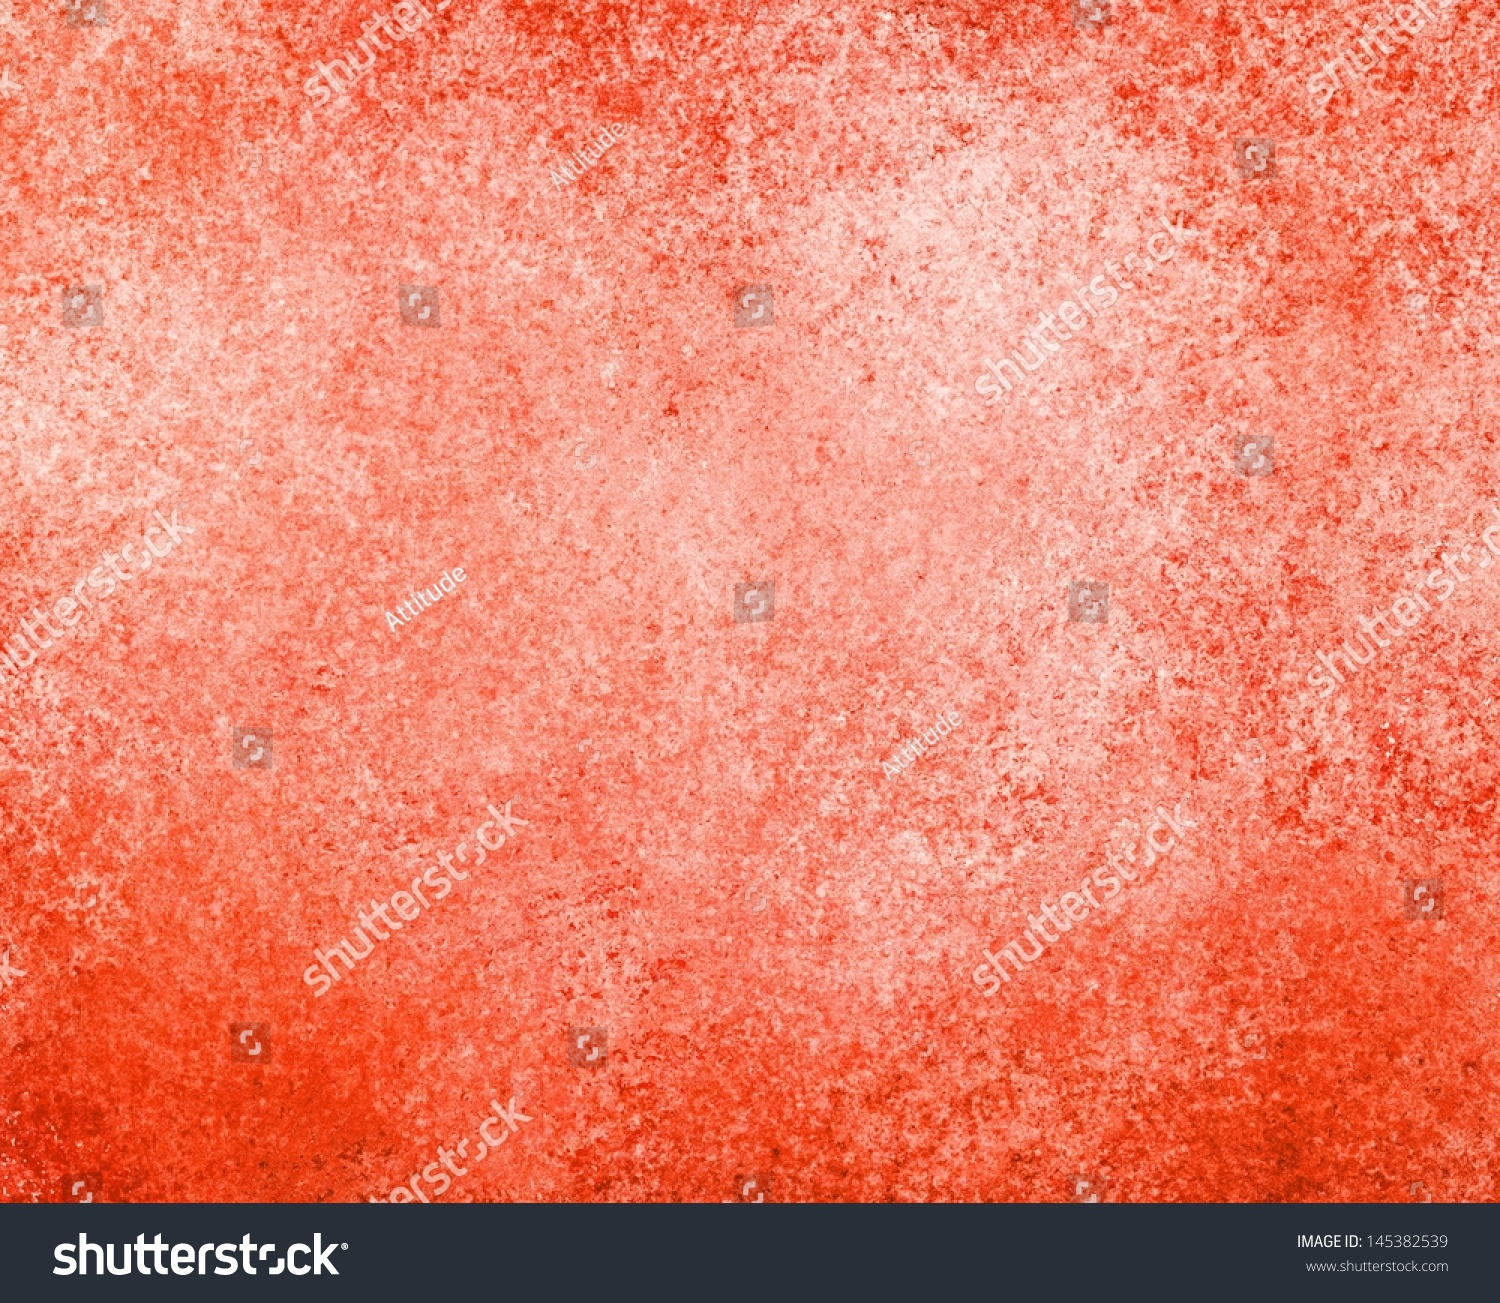 Orange Sponge Paint Wall